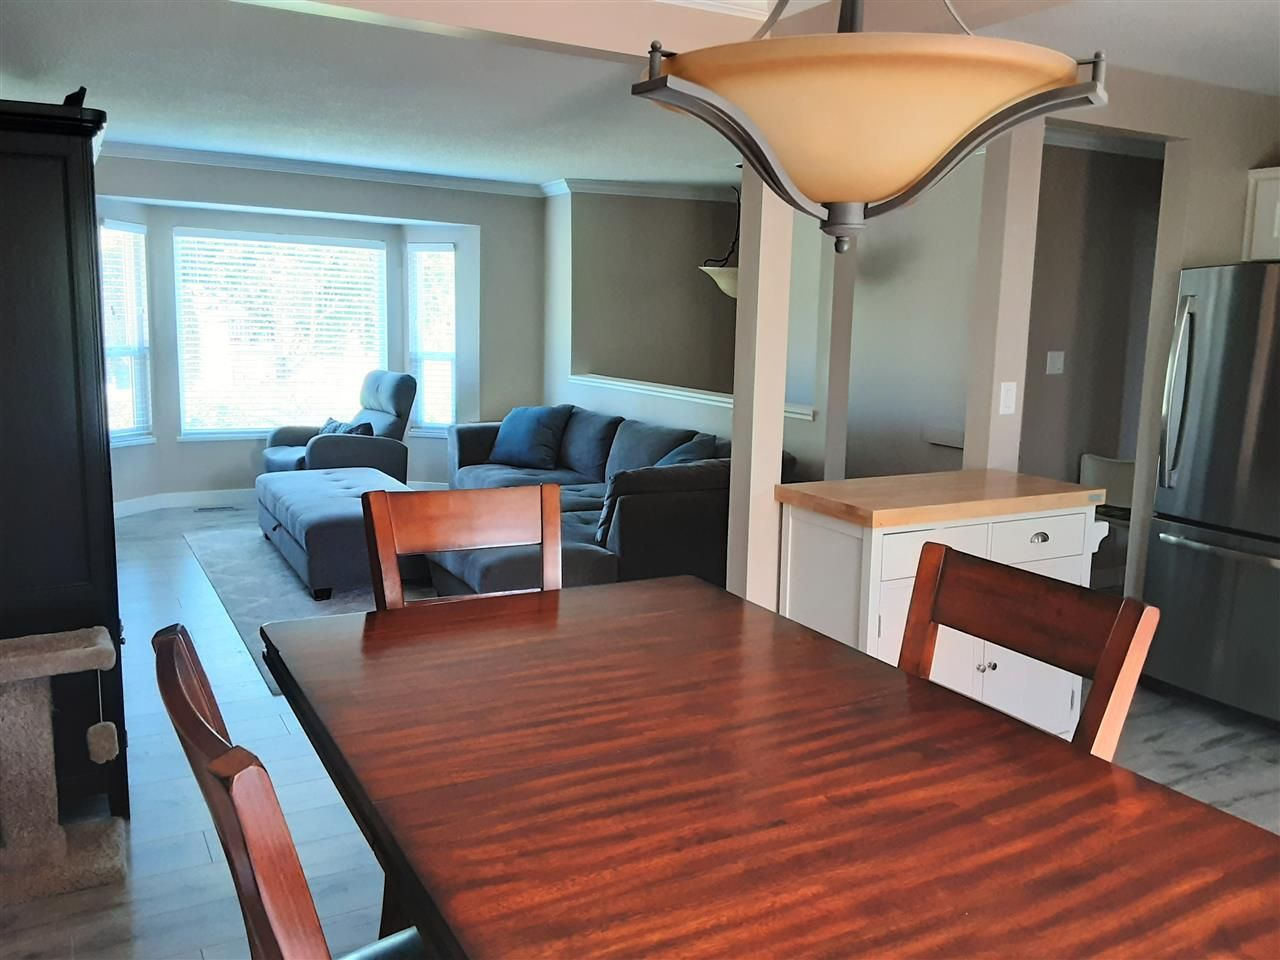 Photo 17: Photos: 3287 274 Street in Langley: Aldergrove Langley House for sale : MLS®# R2484329